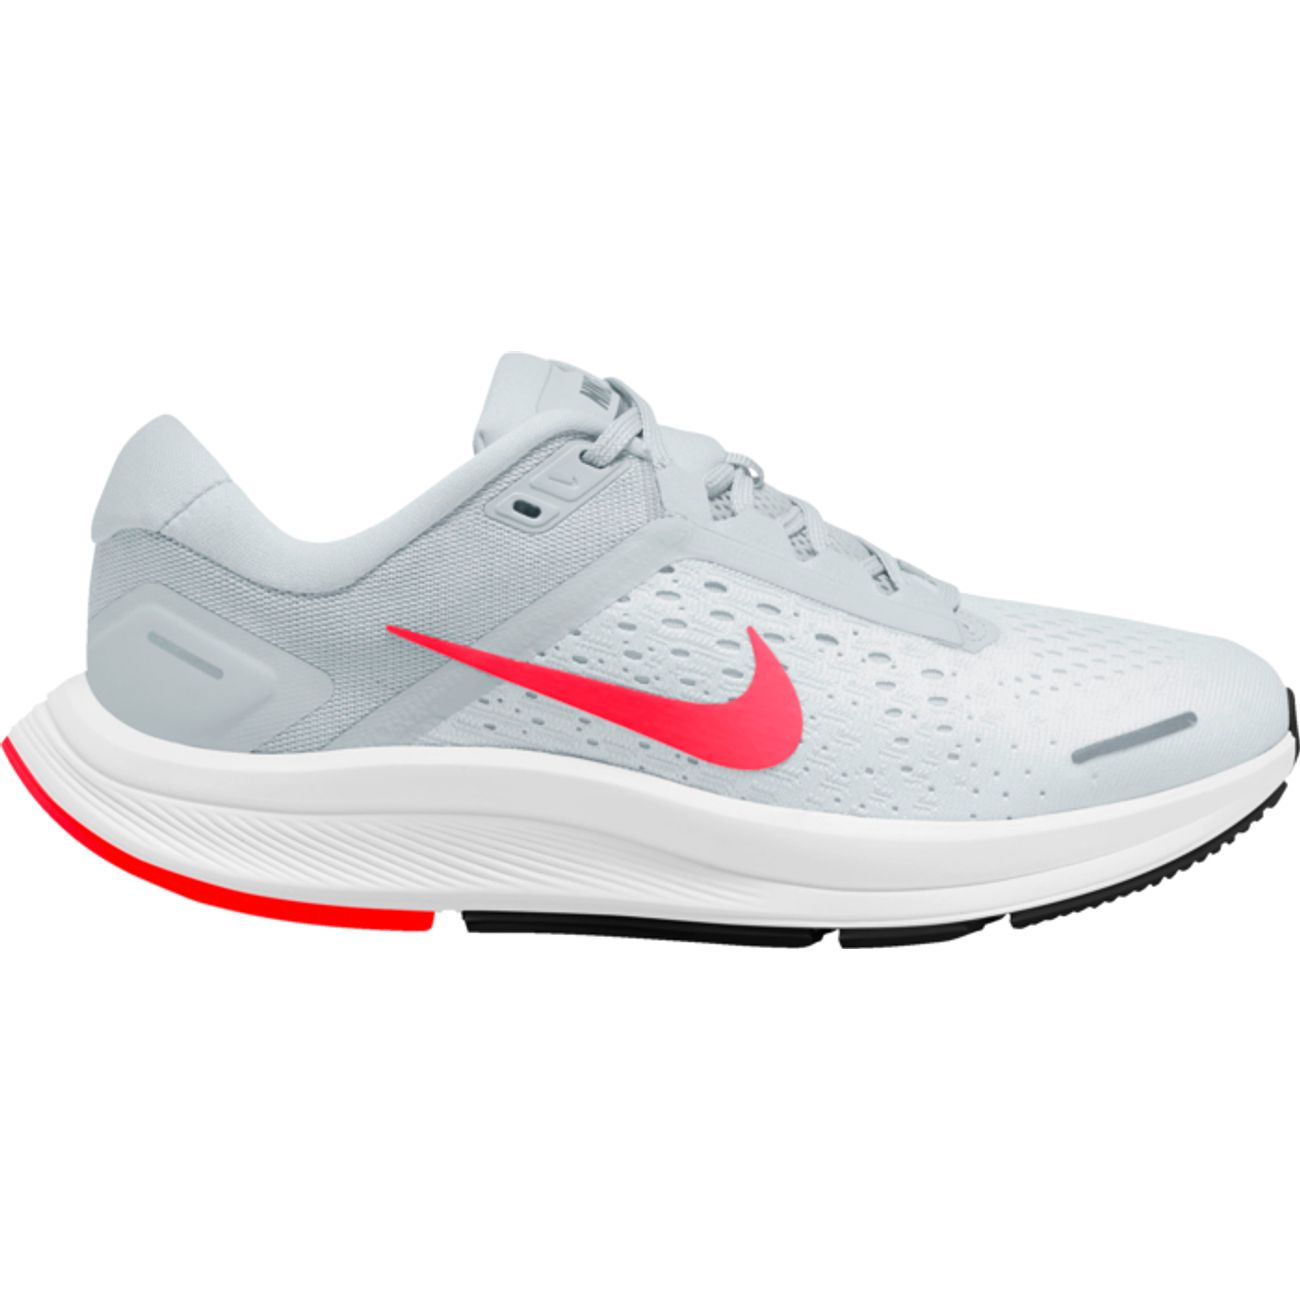 CHAUSSURES BASSES running femme NIKE W NIKE AIR ZOOM STRUCTURE 23